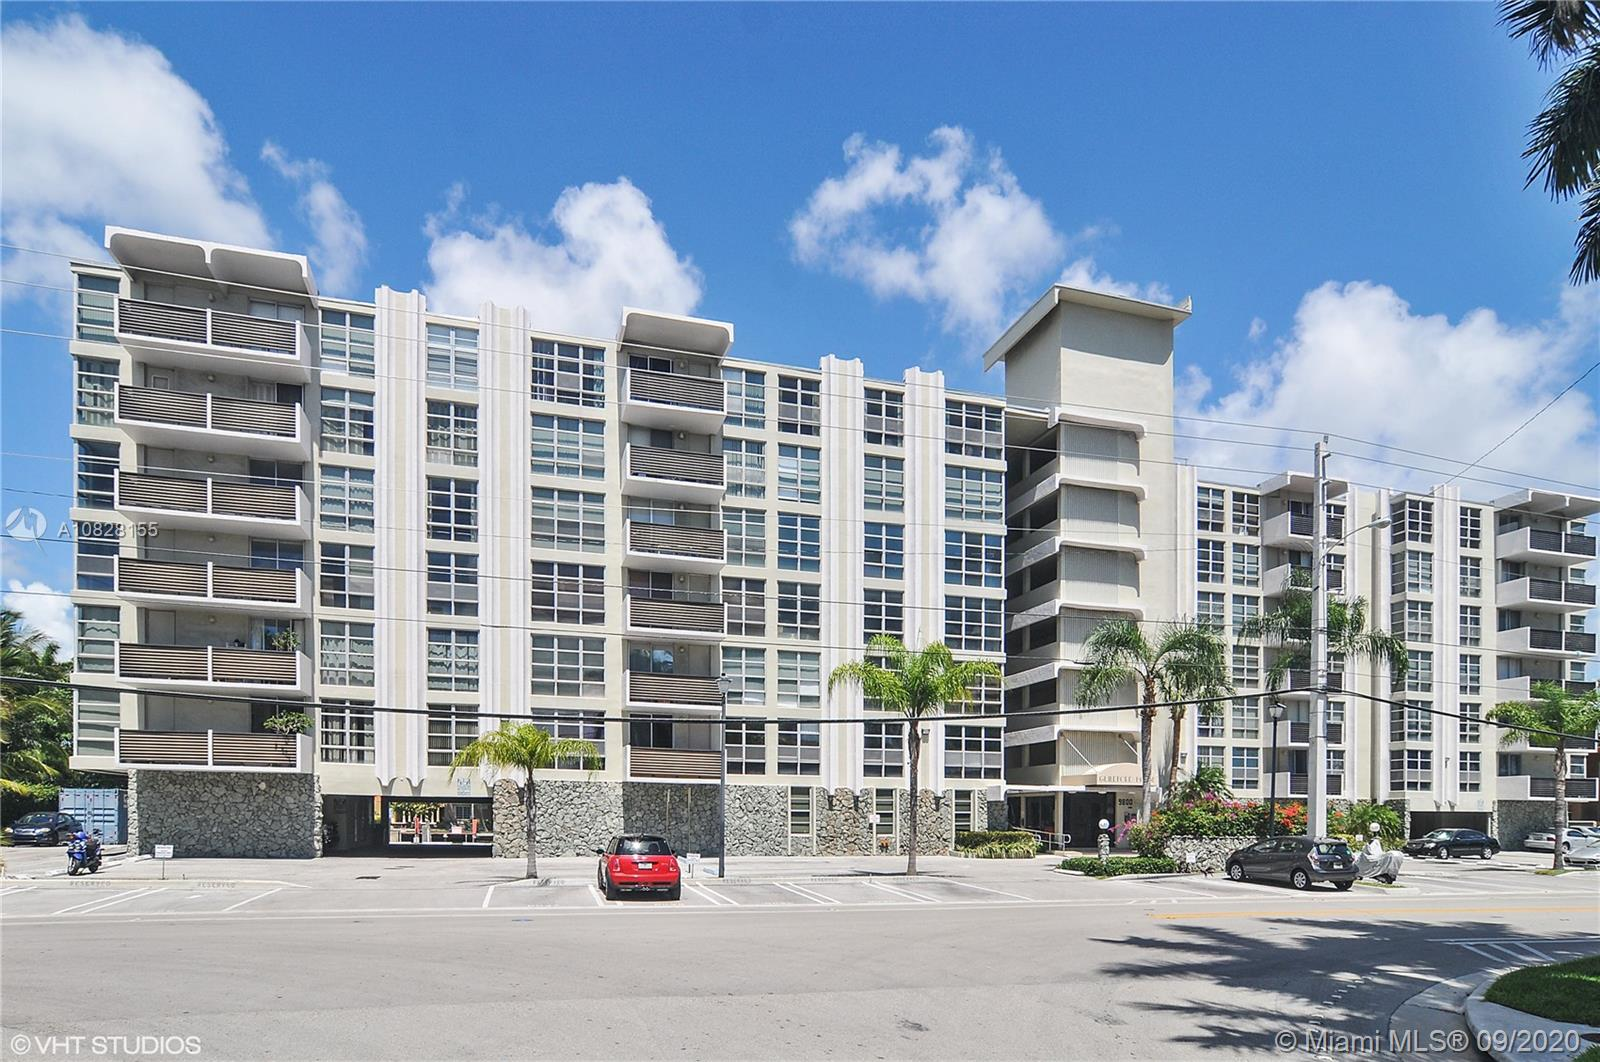 Waterfront corner unit featuring direct canal views, tile floors throughout and hurricane shutters. Additional features include private storage and assigned parking. Fully renovated building with secured entry, laundry on every floor and beautiful pool deck overlooking the intracoastal waterway. HOA fee includes cable TV and high speed internet. Rentals allowed 1st year of ownership. Located just steps away from fine dining, houses of worship, top rated school Ruth K Broad K-8 school and pristine beaches.